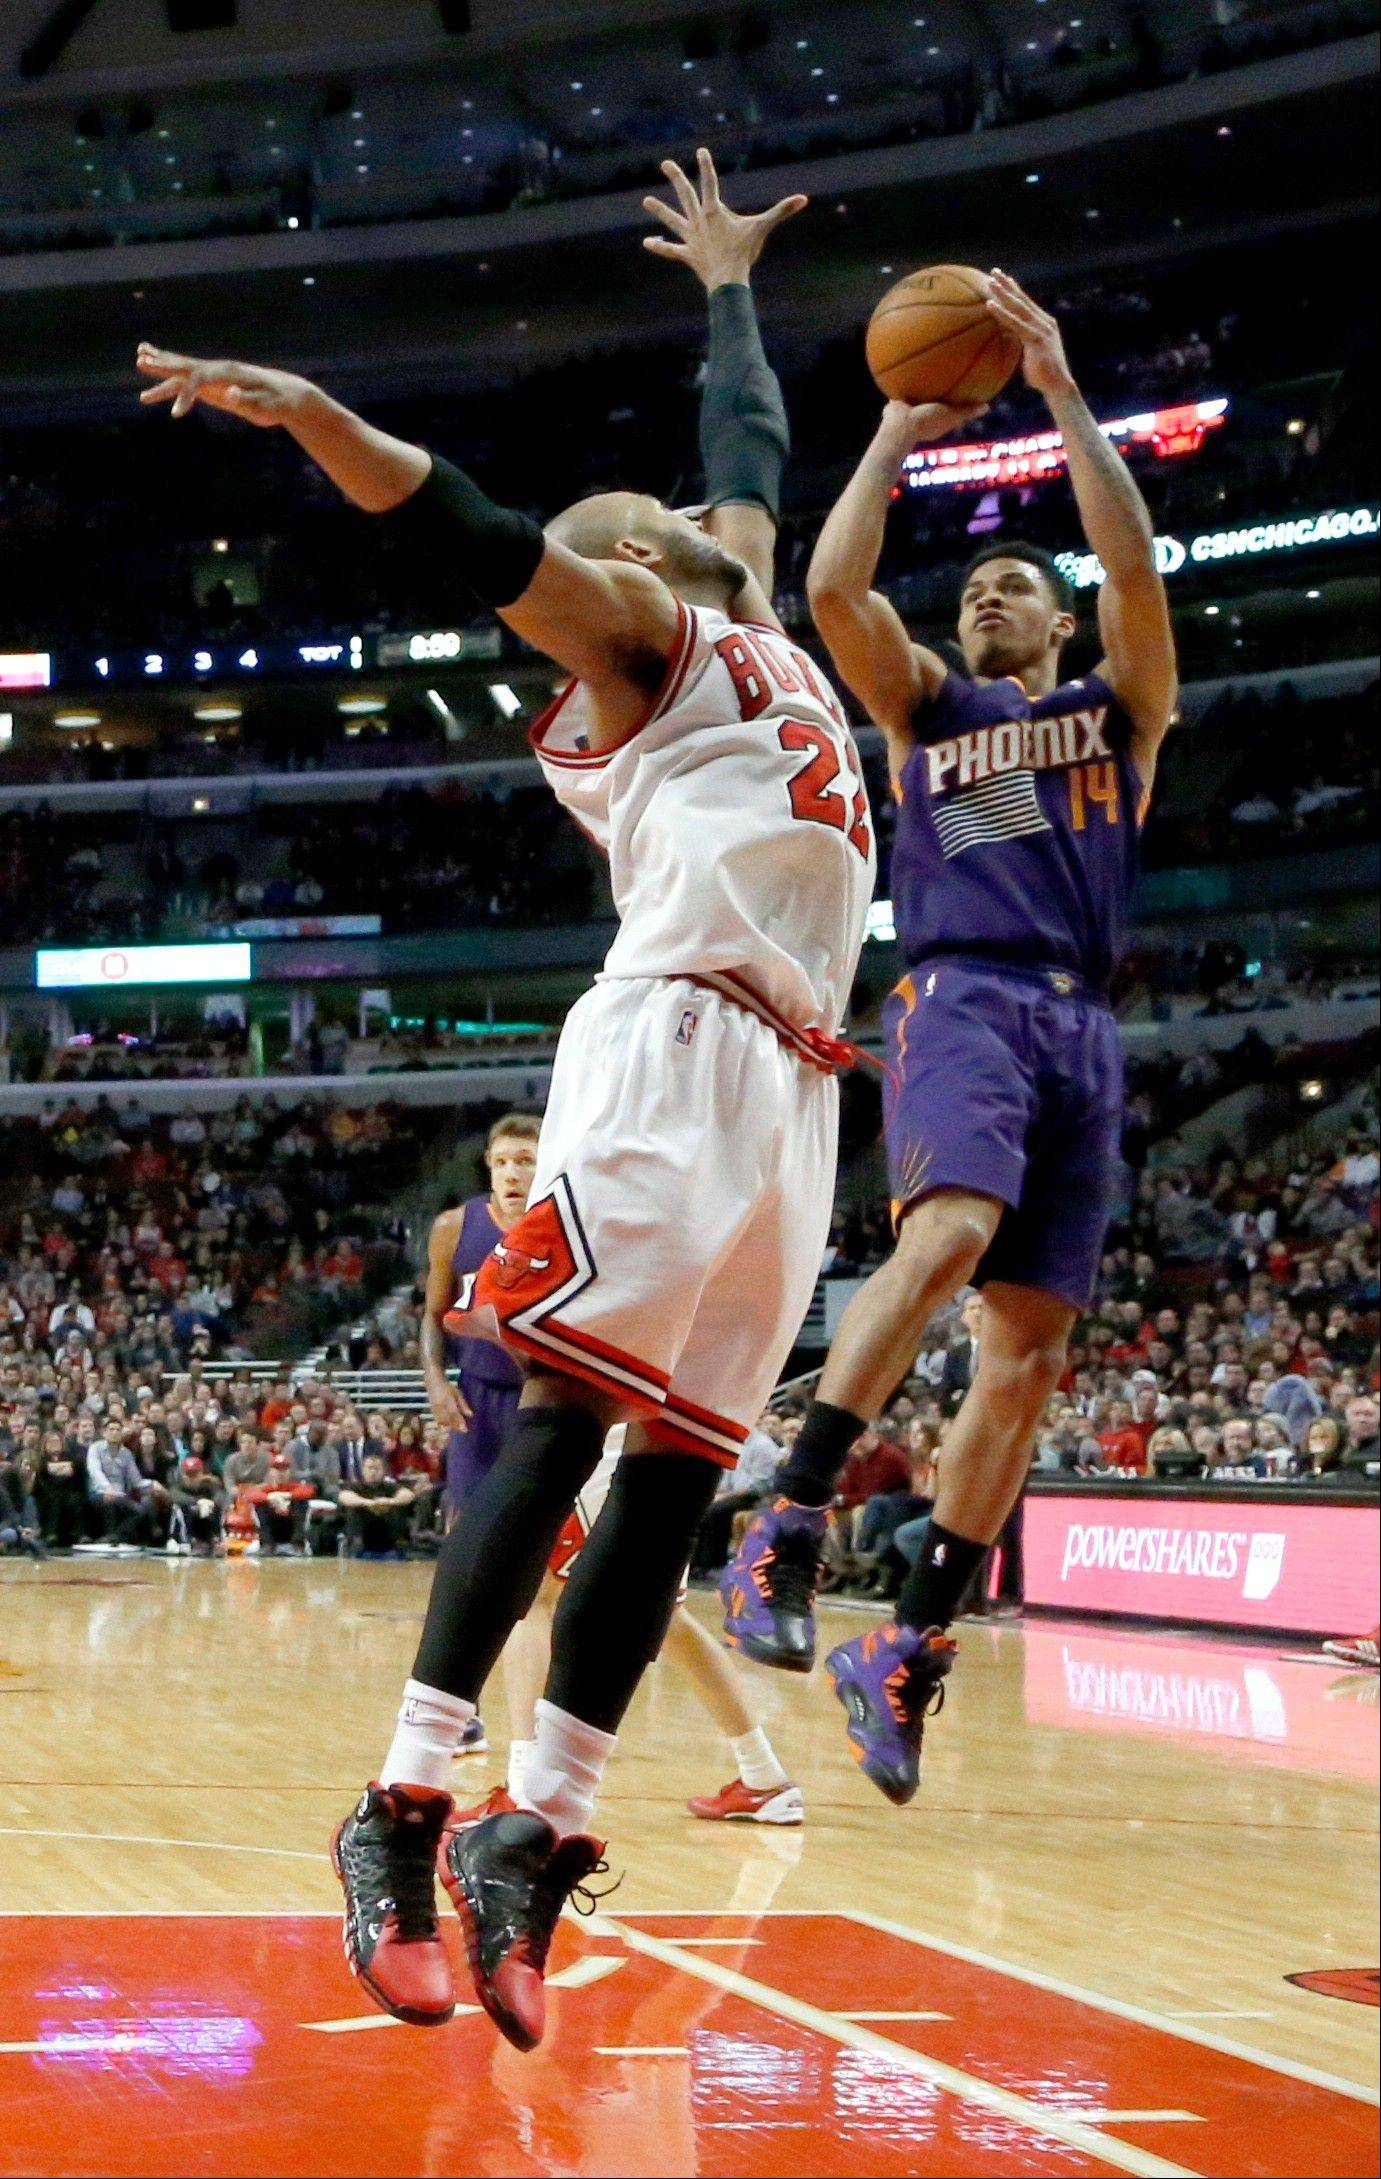 Bulls carry on, win with strong defense